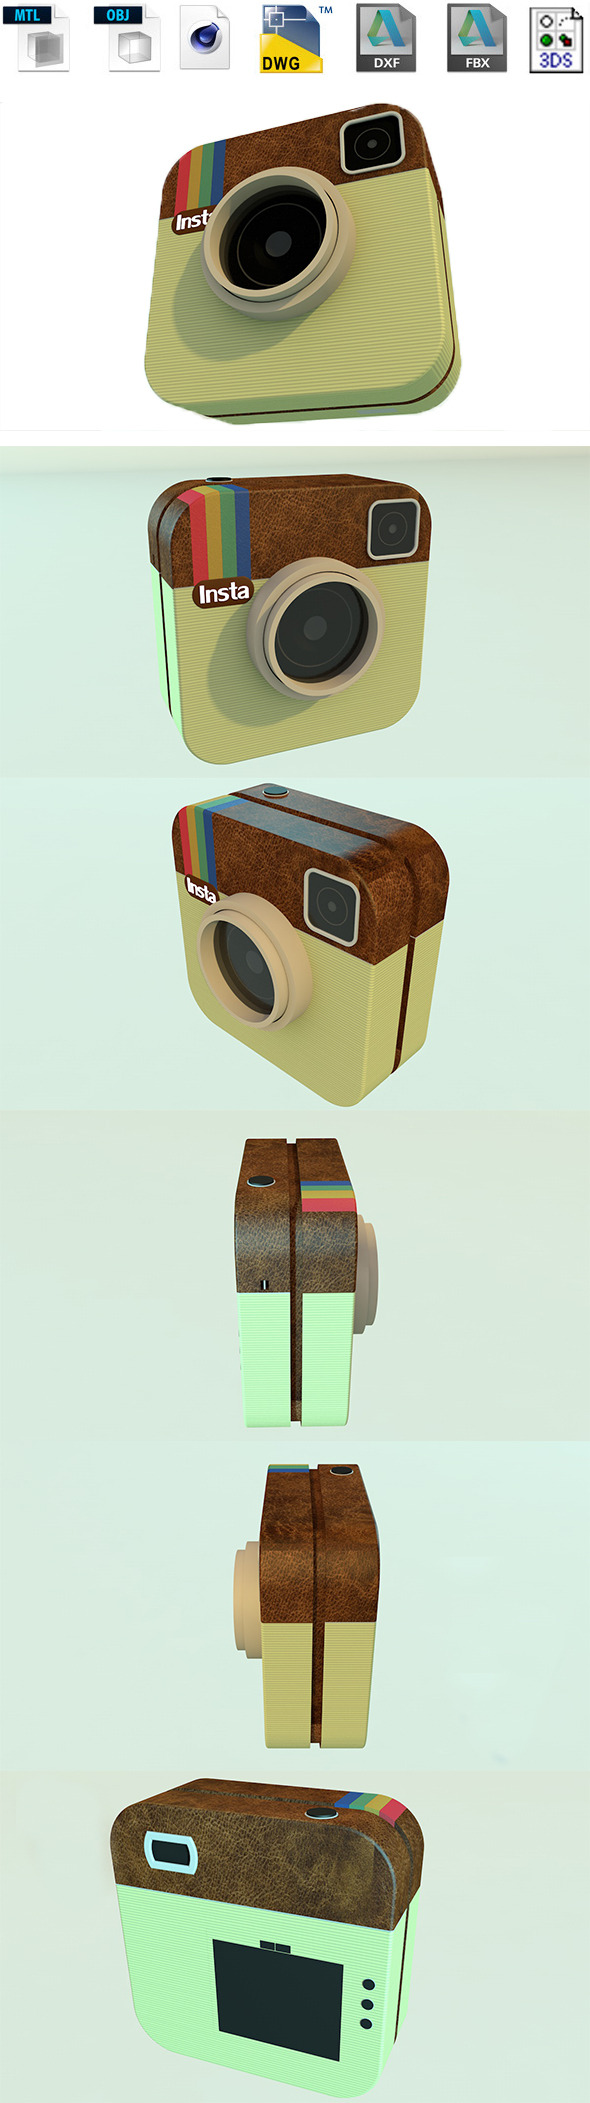 Instgram 3d logo - 3DOcean Item for Sale